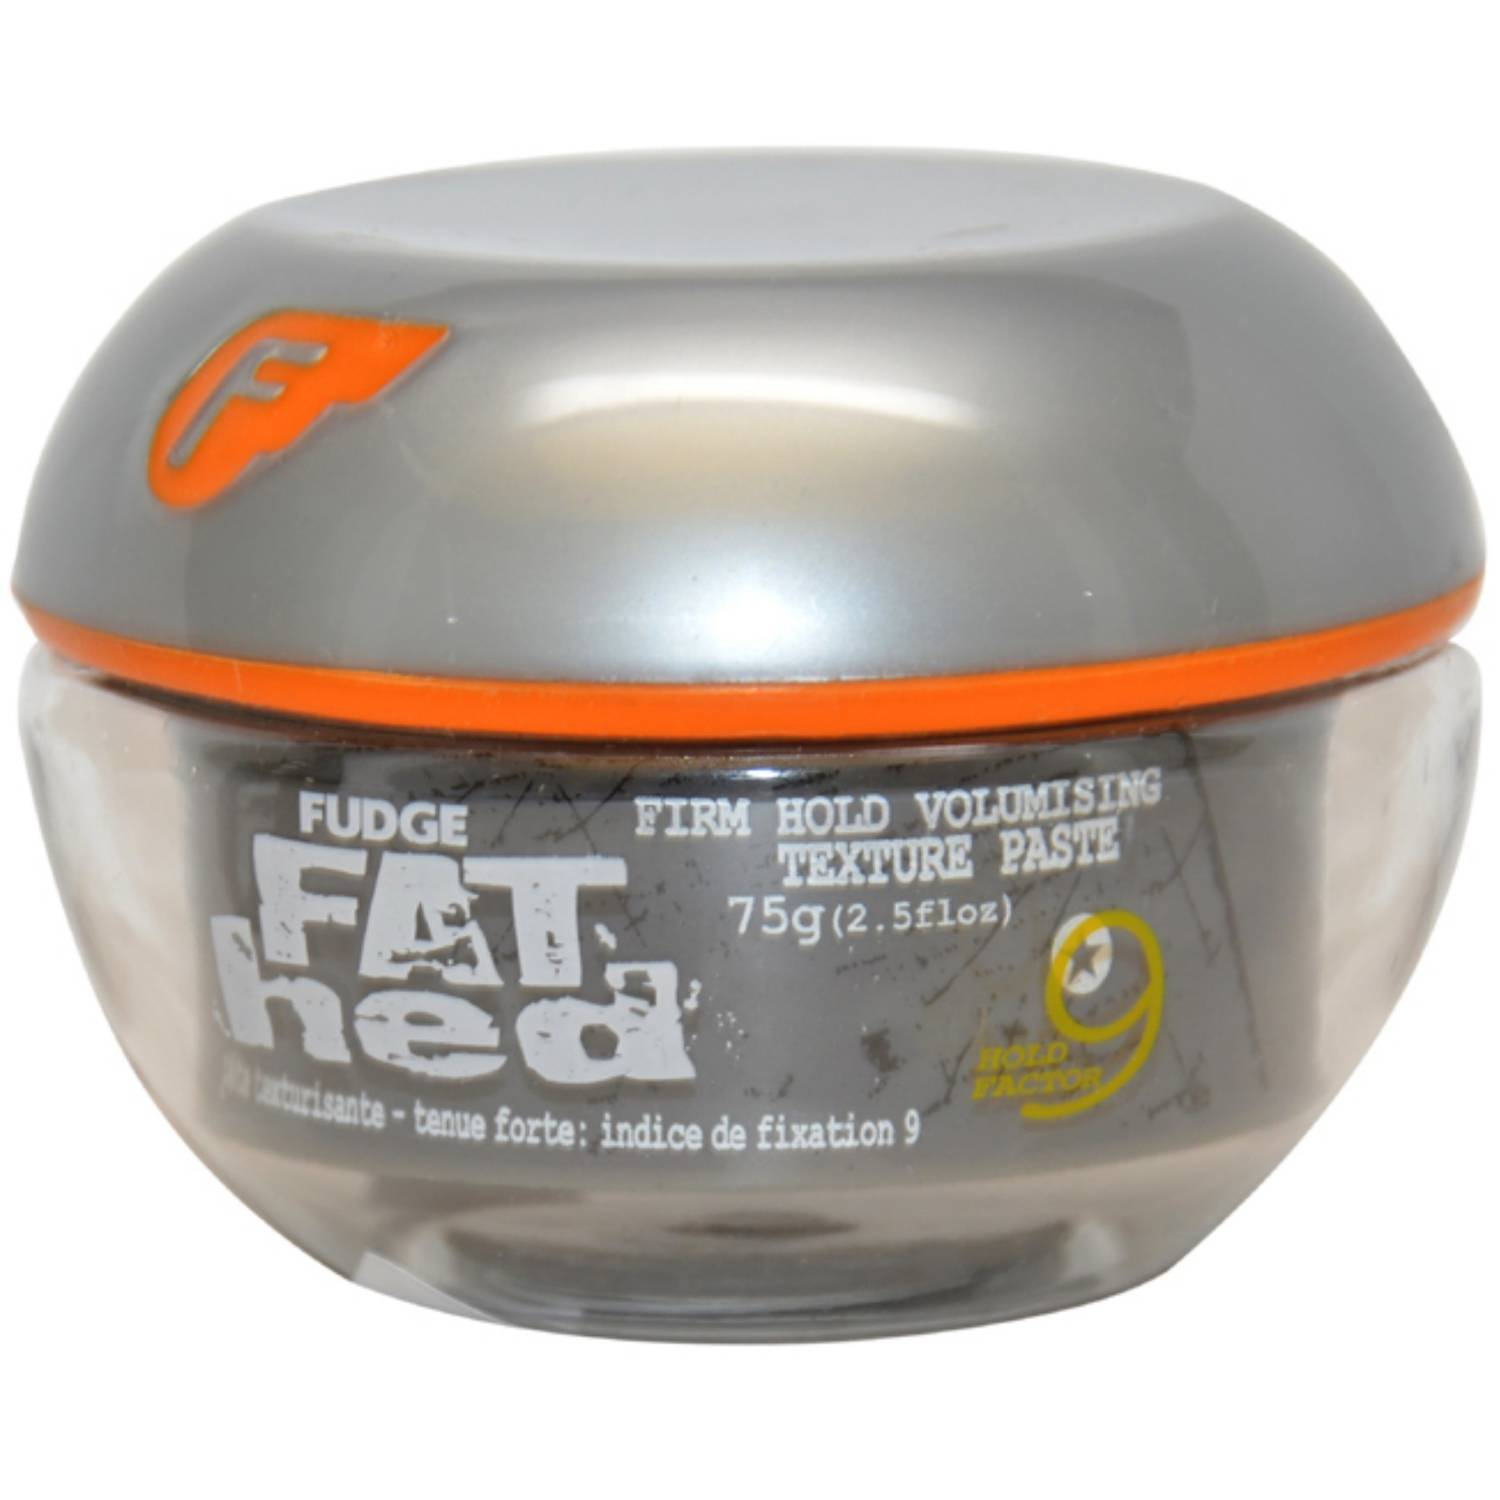 Fudge Fat Hed Firm Hold Volumising Texture Paste, 2.5 fl oz